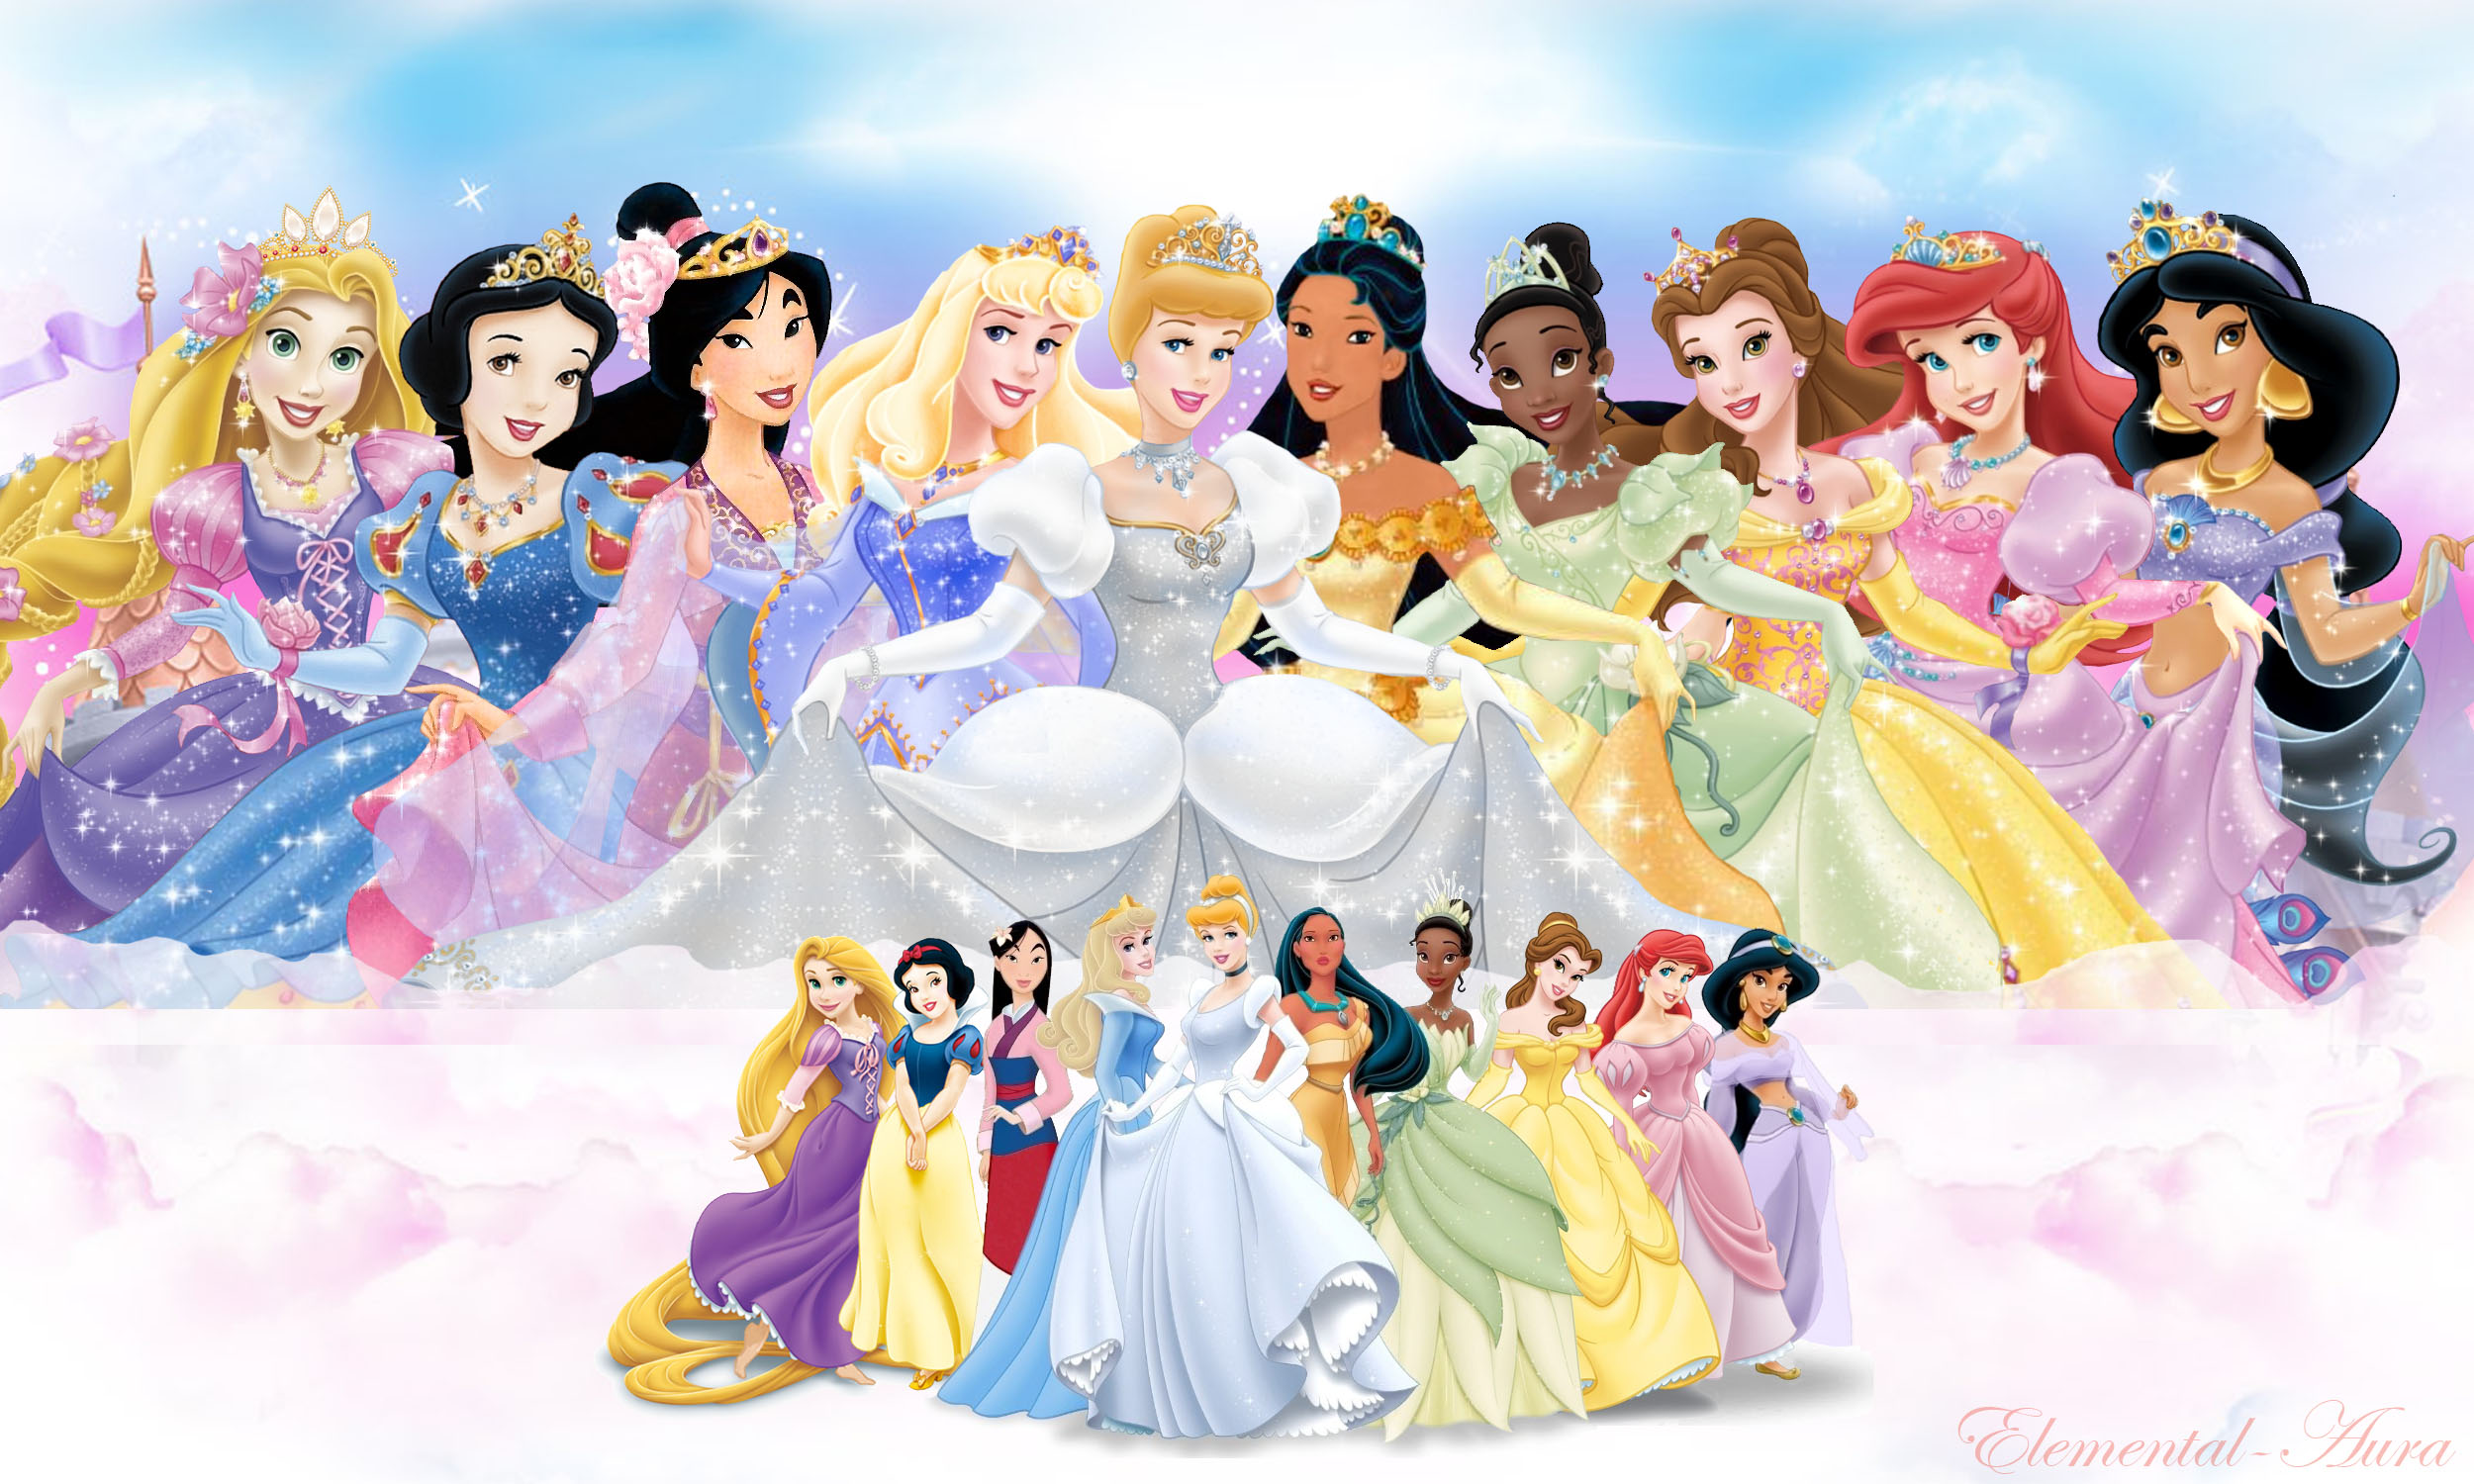 Disney Princess images 10 Official Princesses HD wallpaper and ...